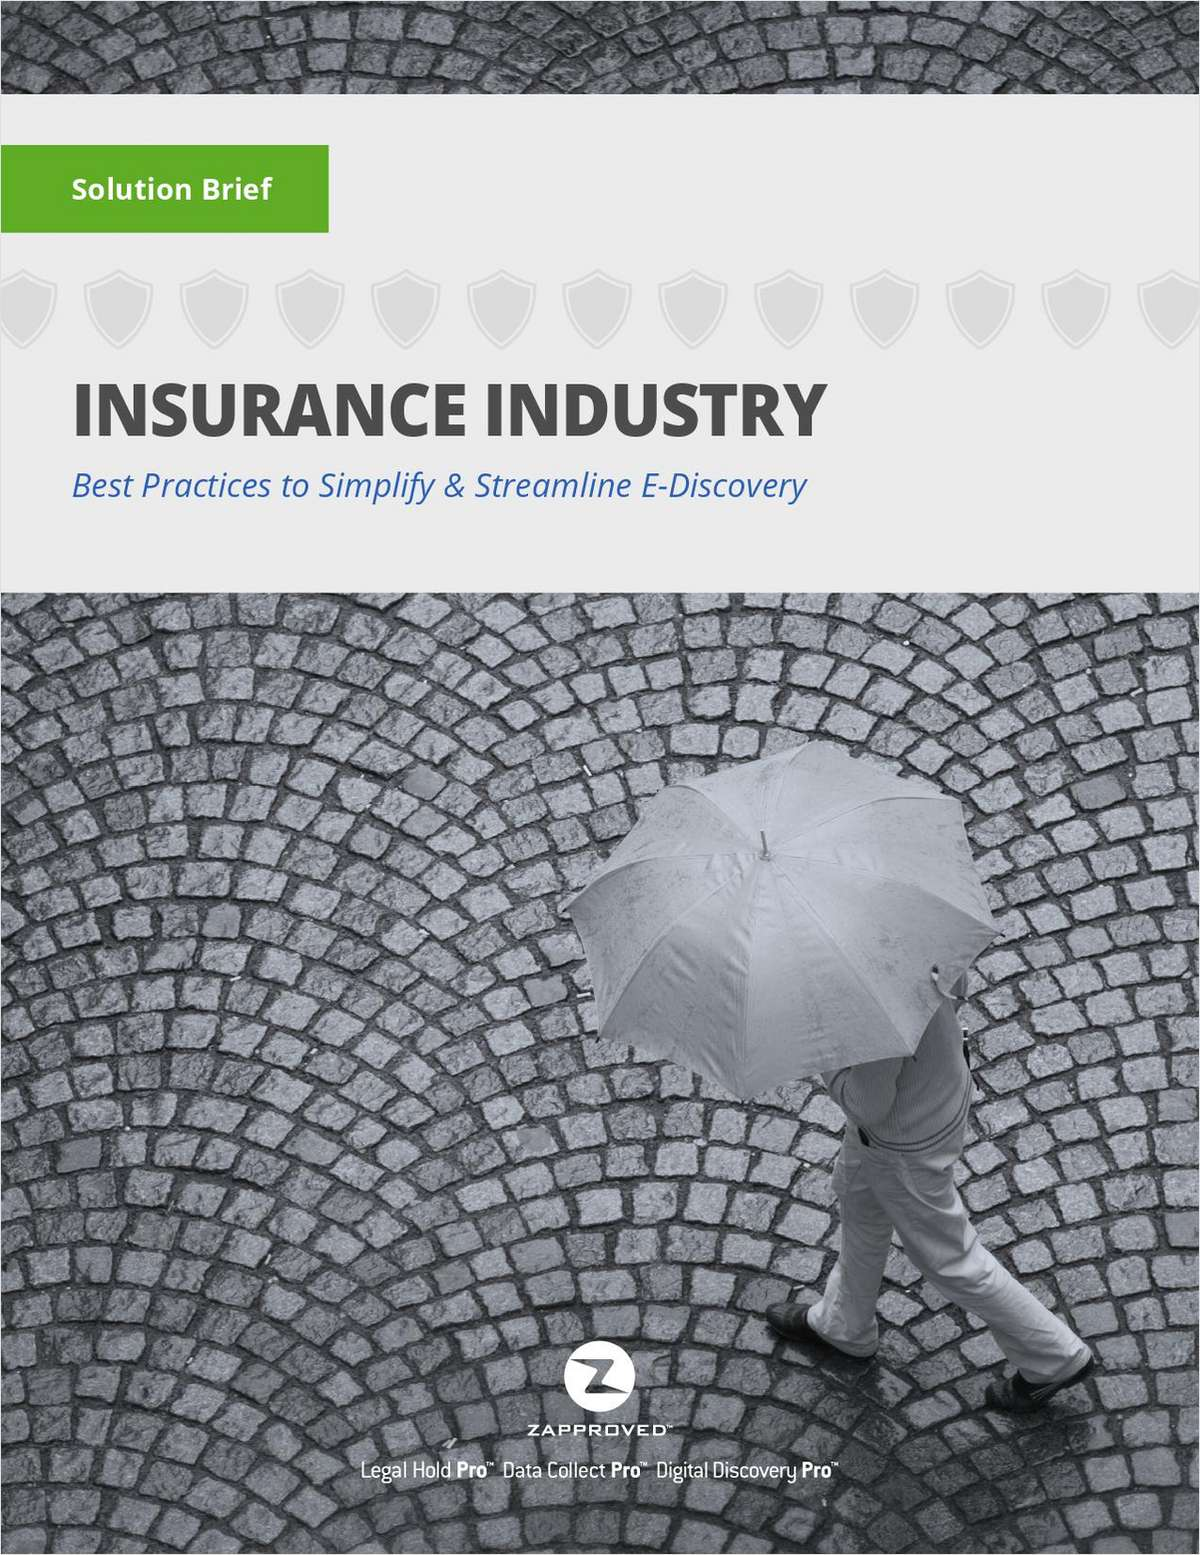 2017 Solution Brief: Insurance Industry